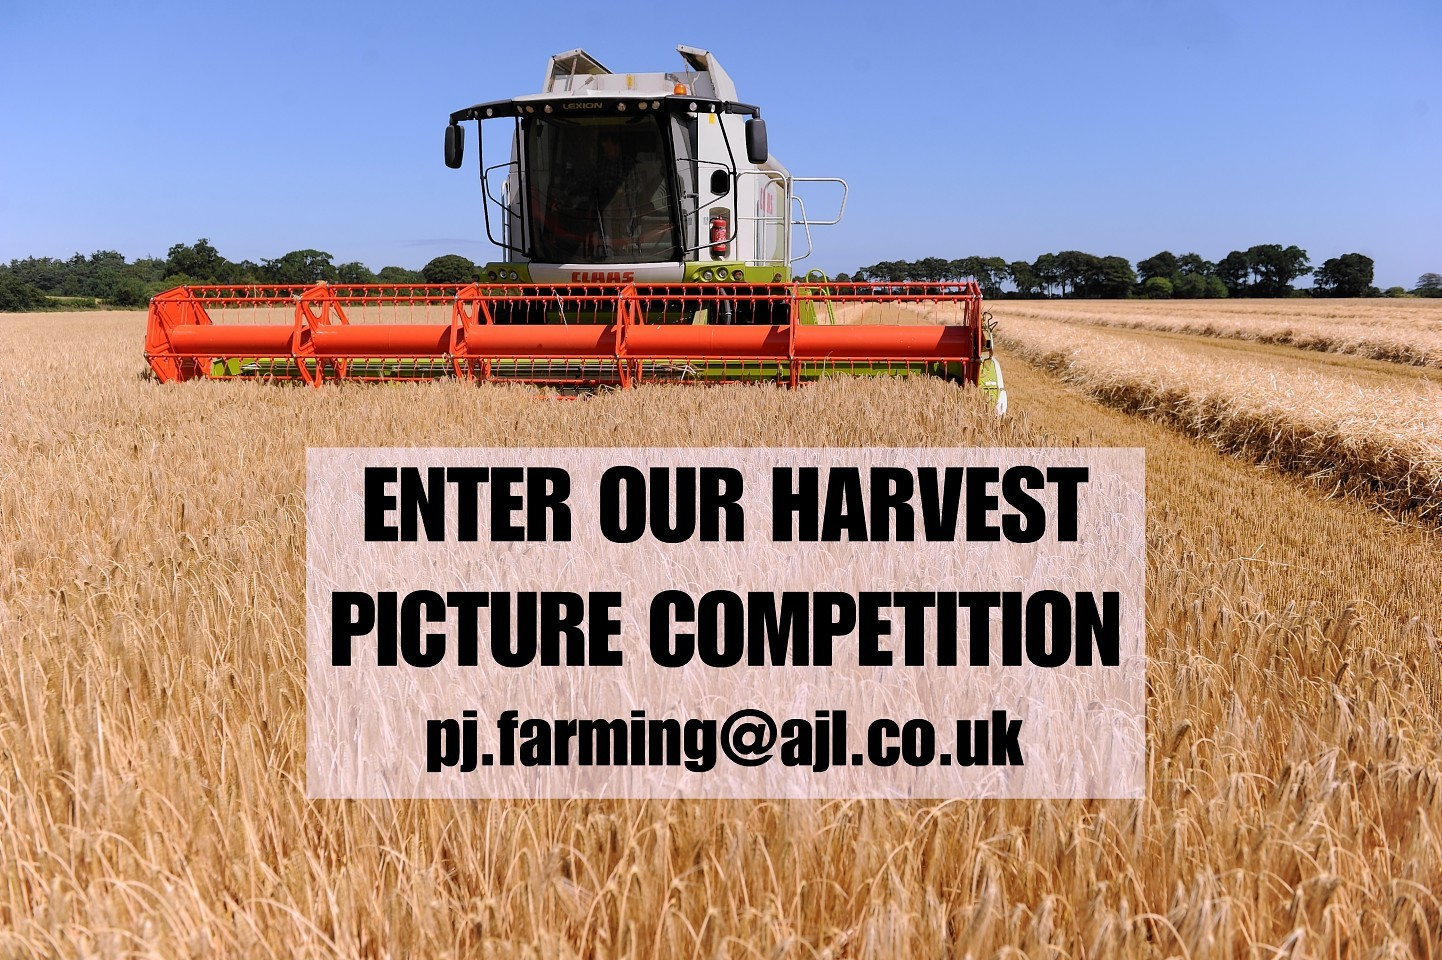 Send us in your harvest pictures